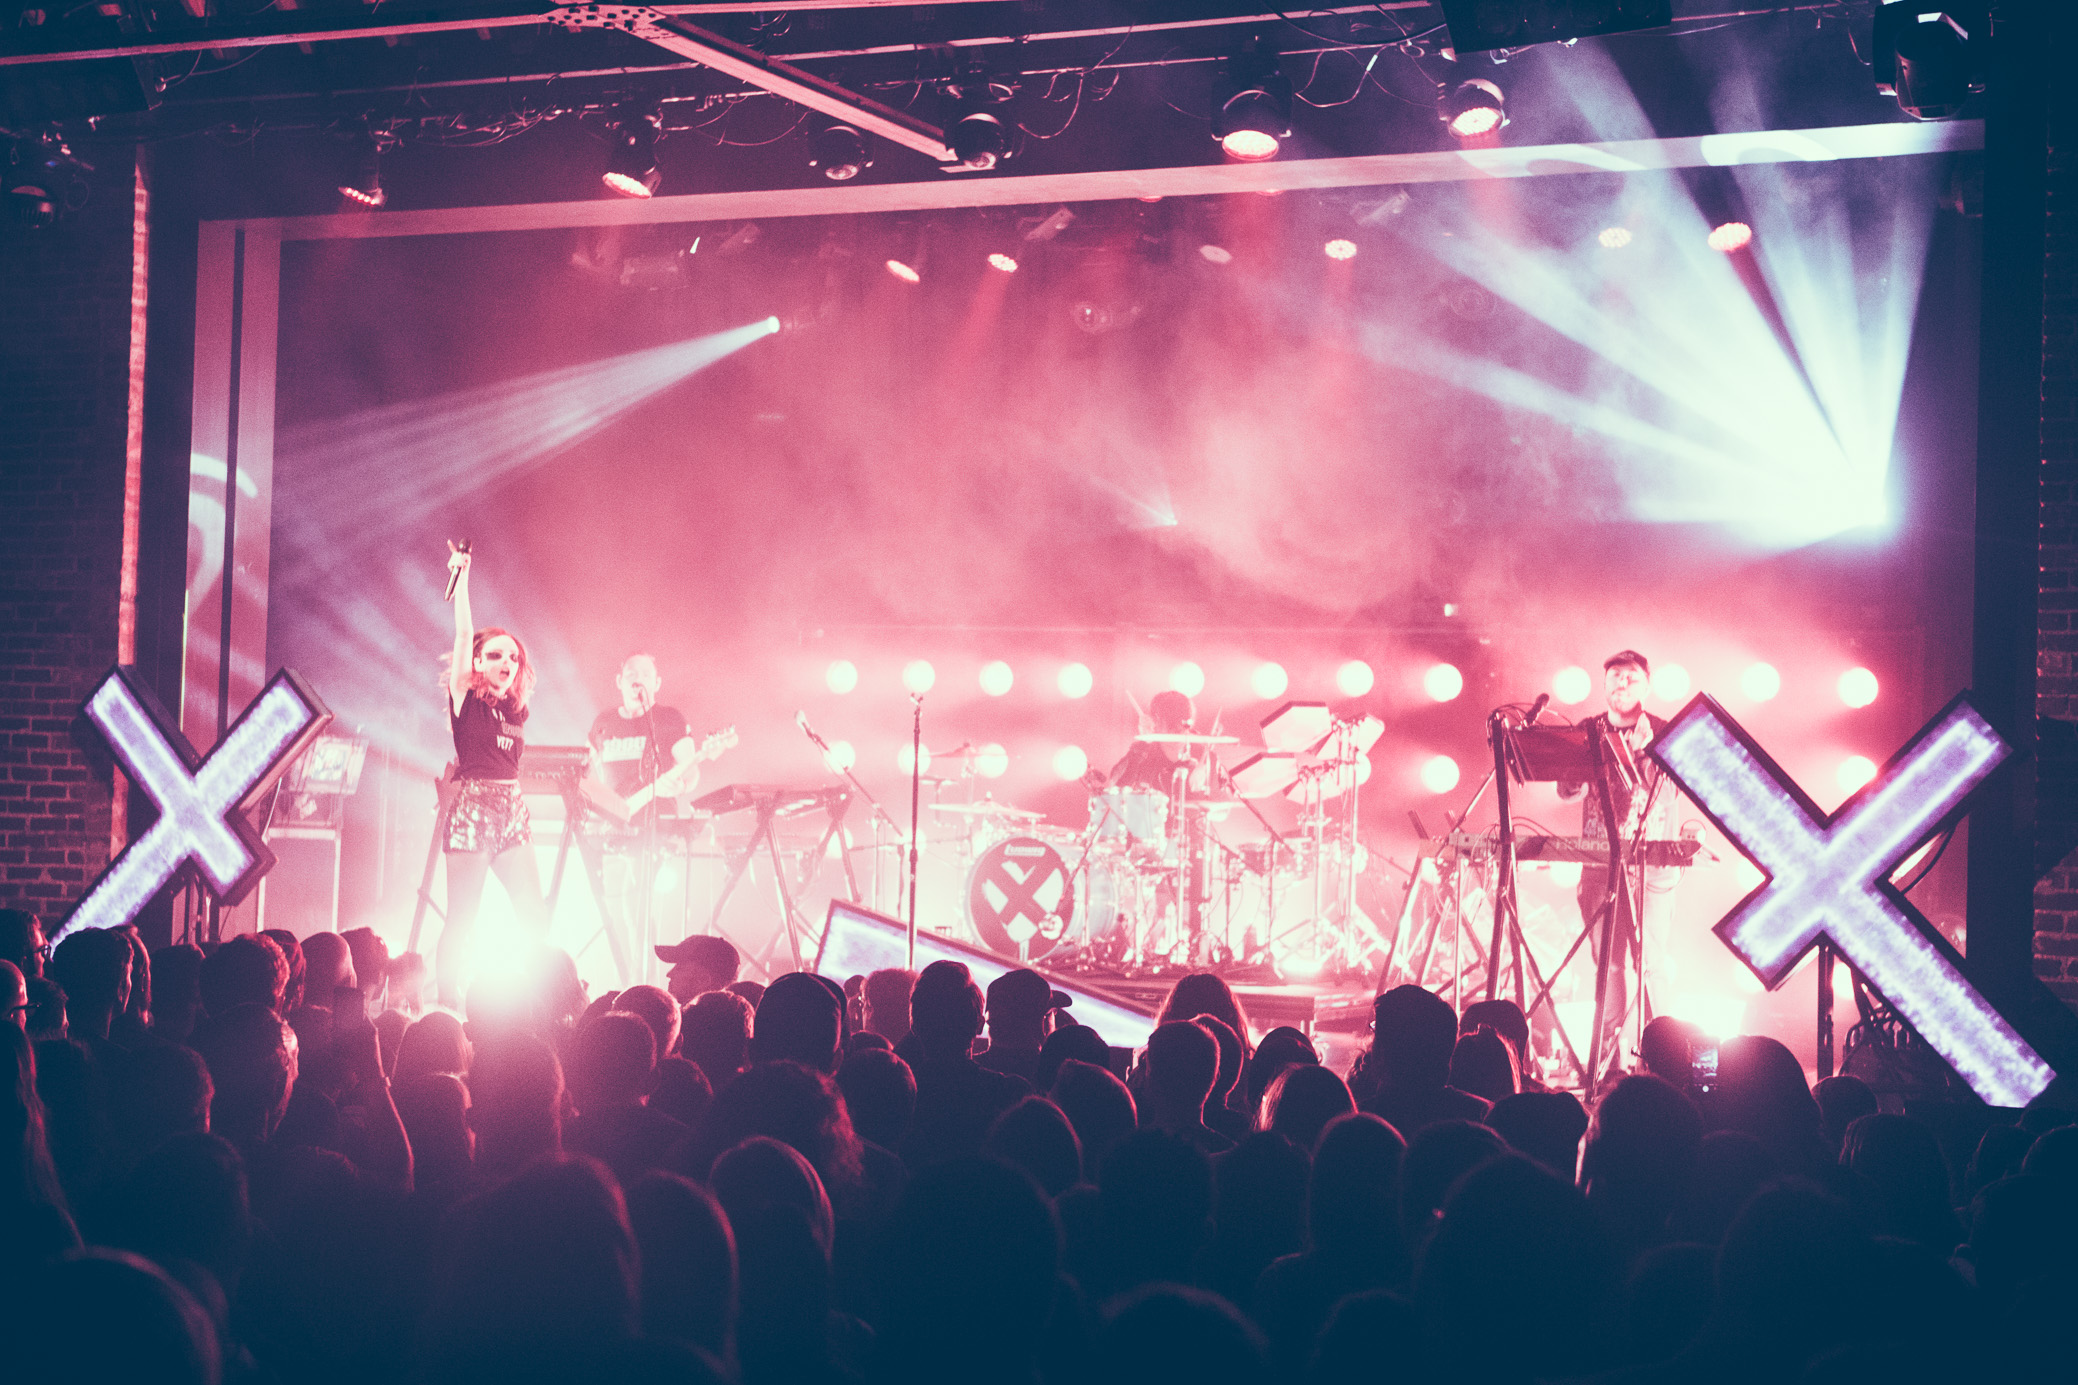 CHVRCHES performs in concert at Iron City in Birmingham, Alabama on October 8th, 2018. (Photo by David A. Smith / DSmithScenes)